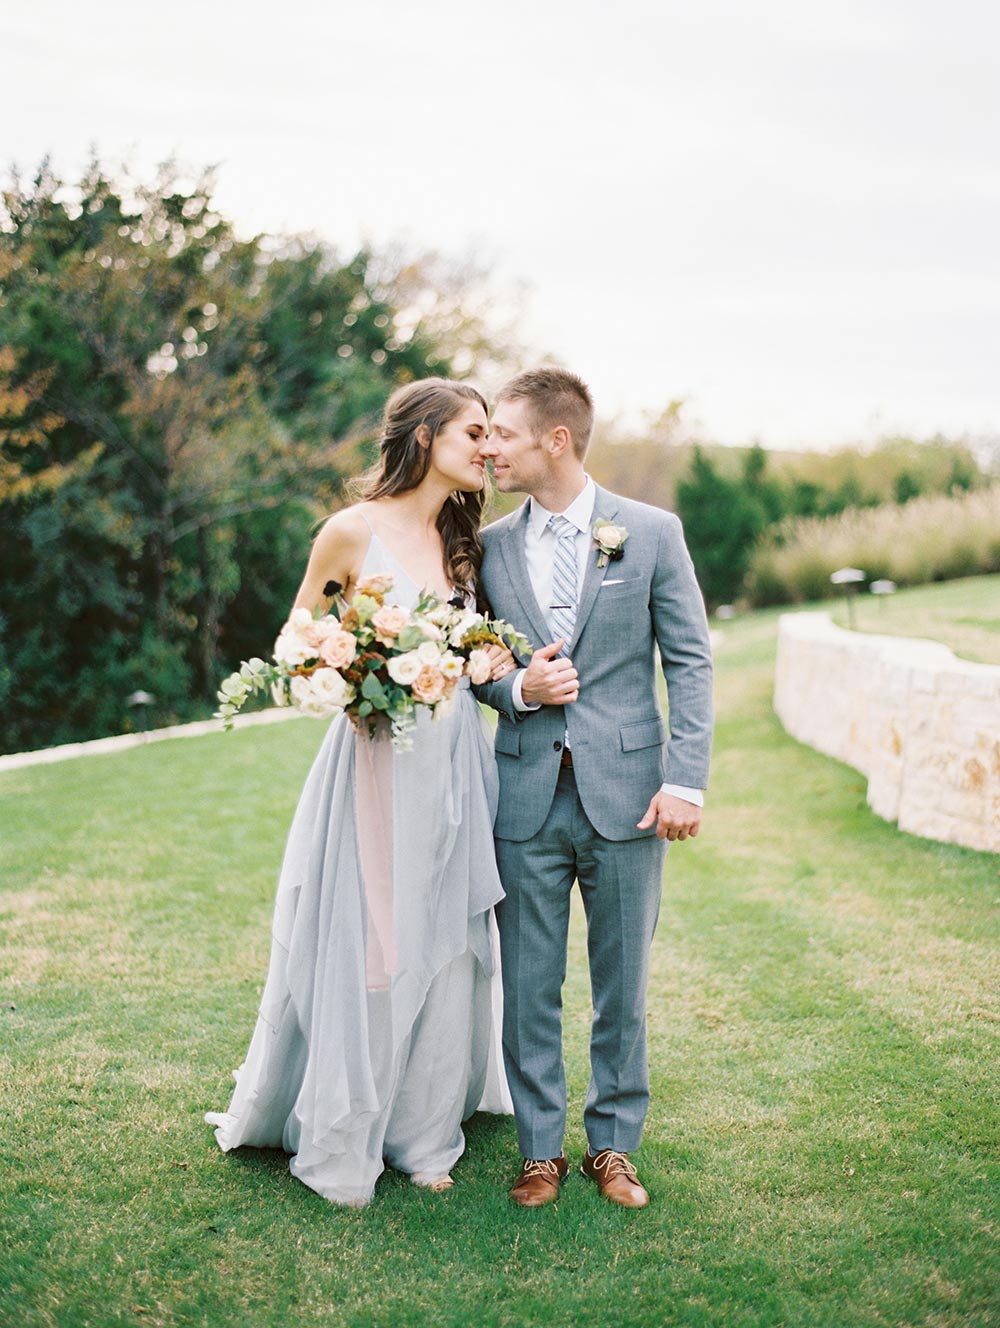 surprise Dallas proposal with dusty blue wedding dress and overgrown flowers